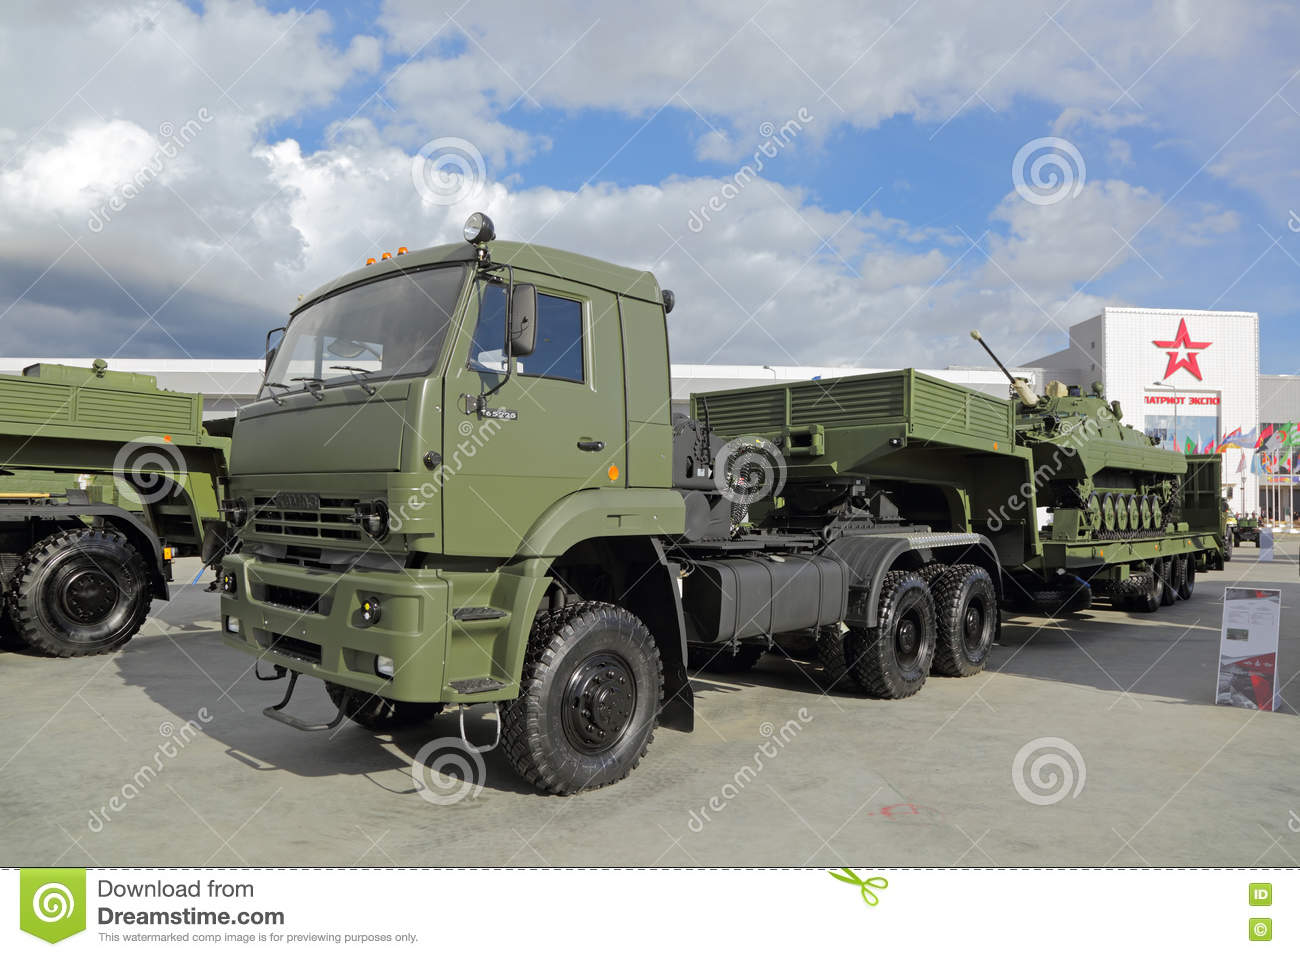 How to collect KAMAZ 12